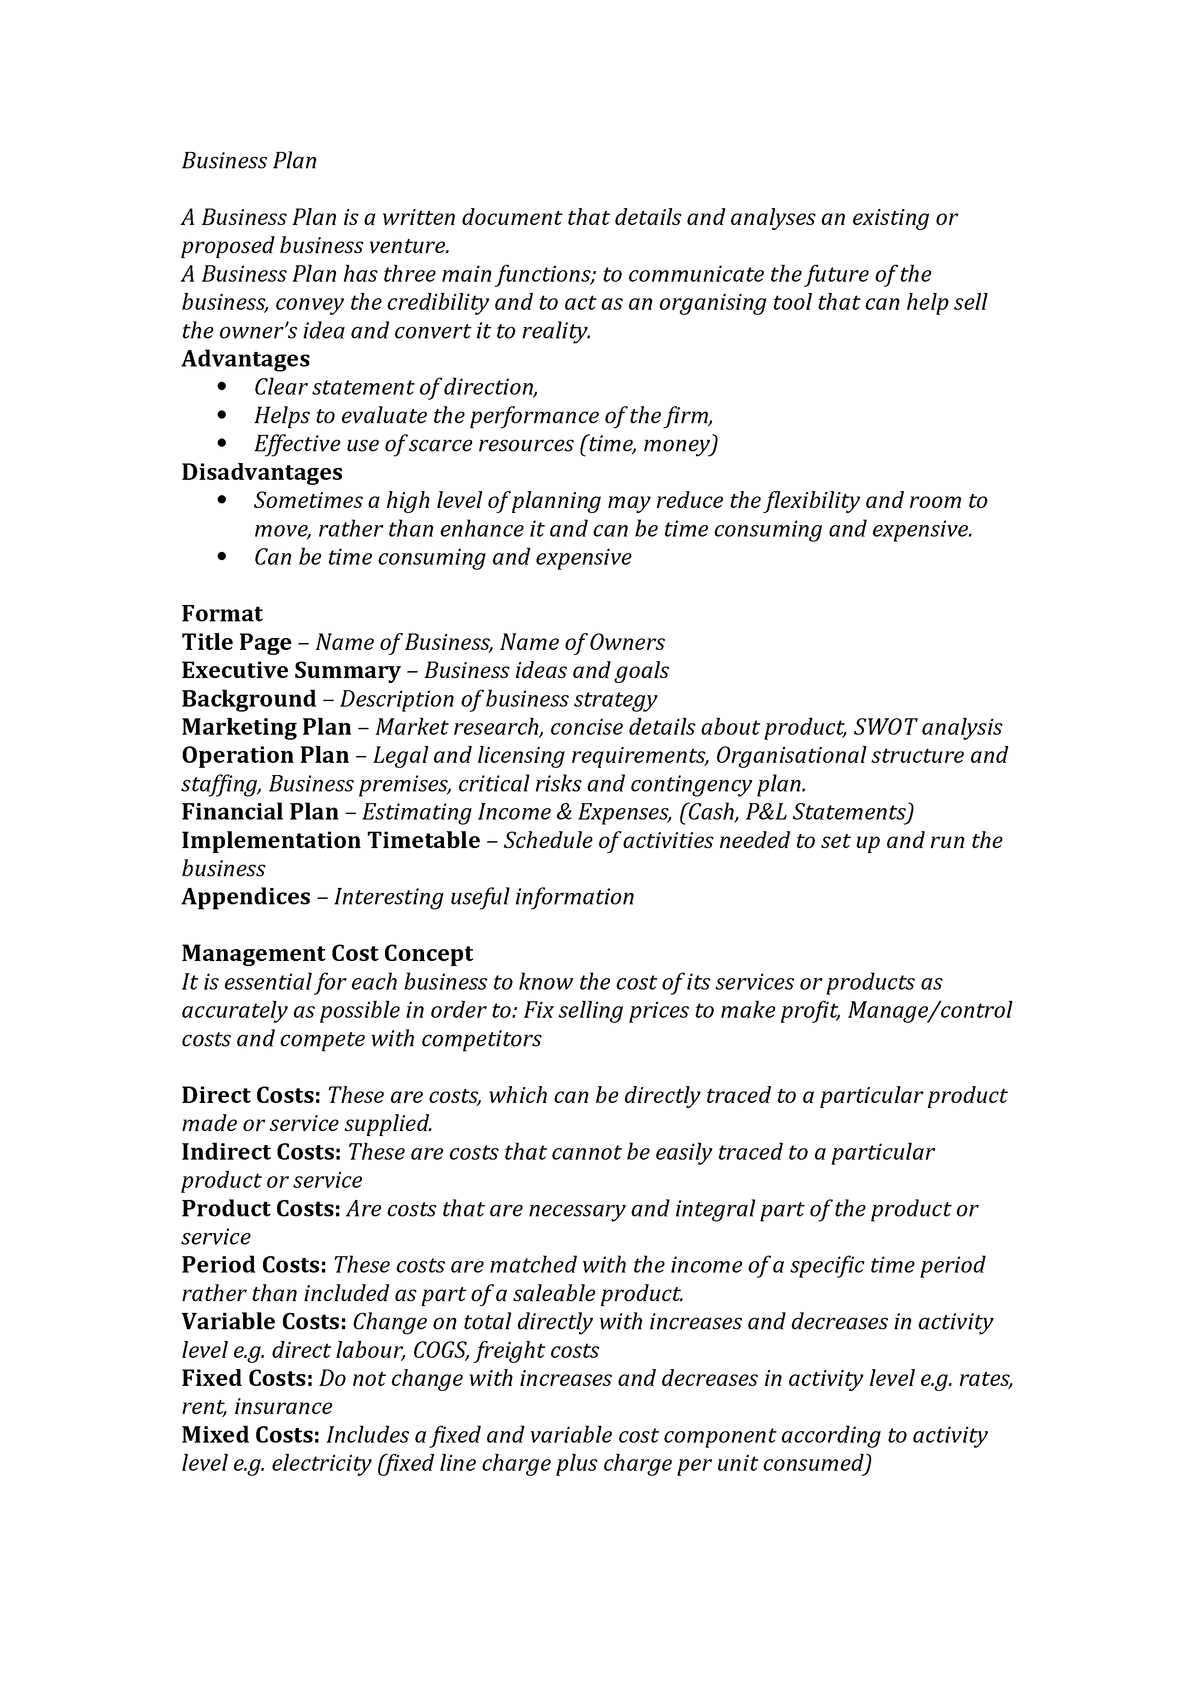 Lecture notes - notes, definitions and formulas for business